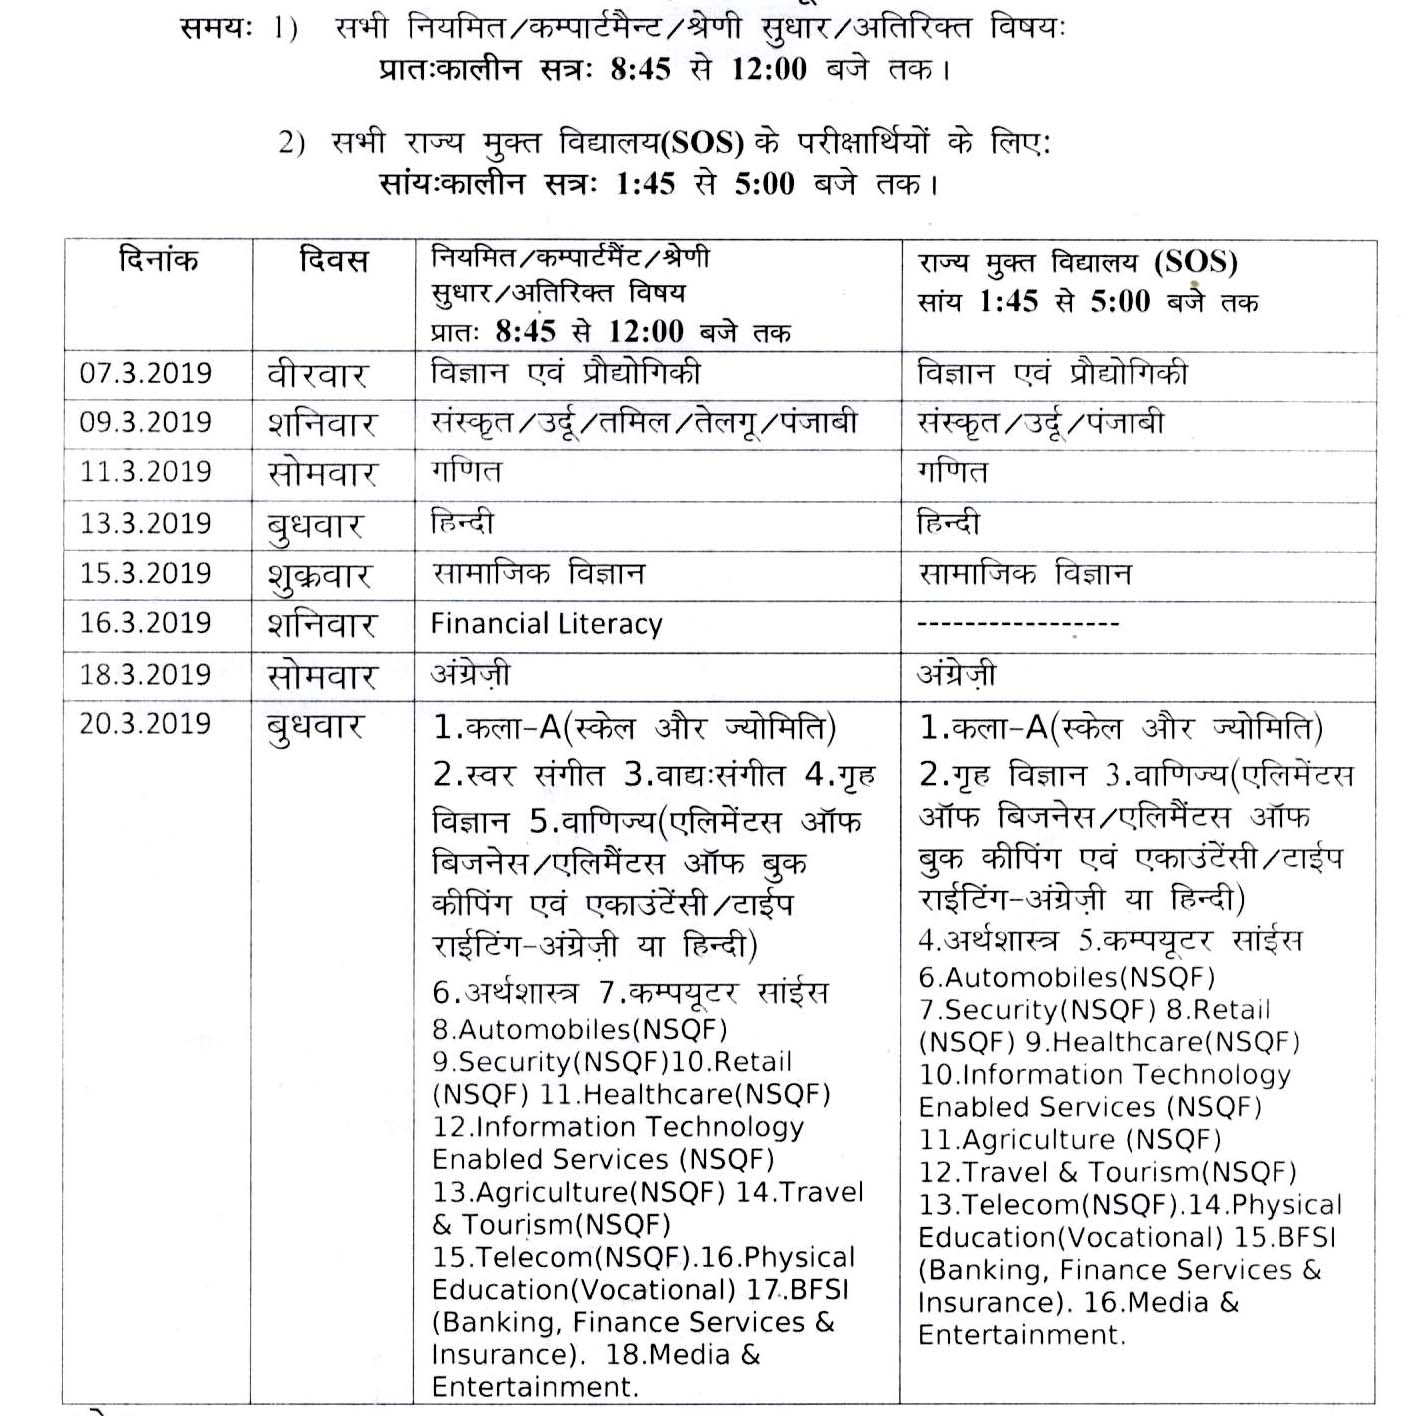 Hp Bose Matric 10th Class Examination Time Table 2019